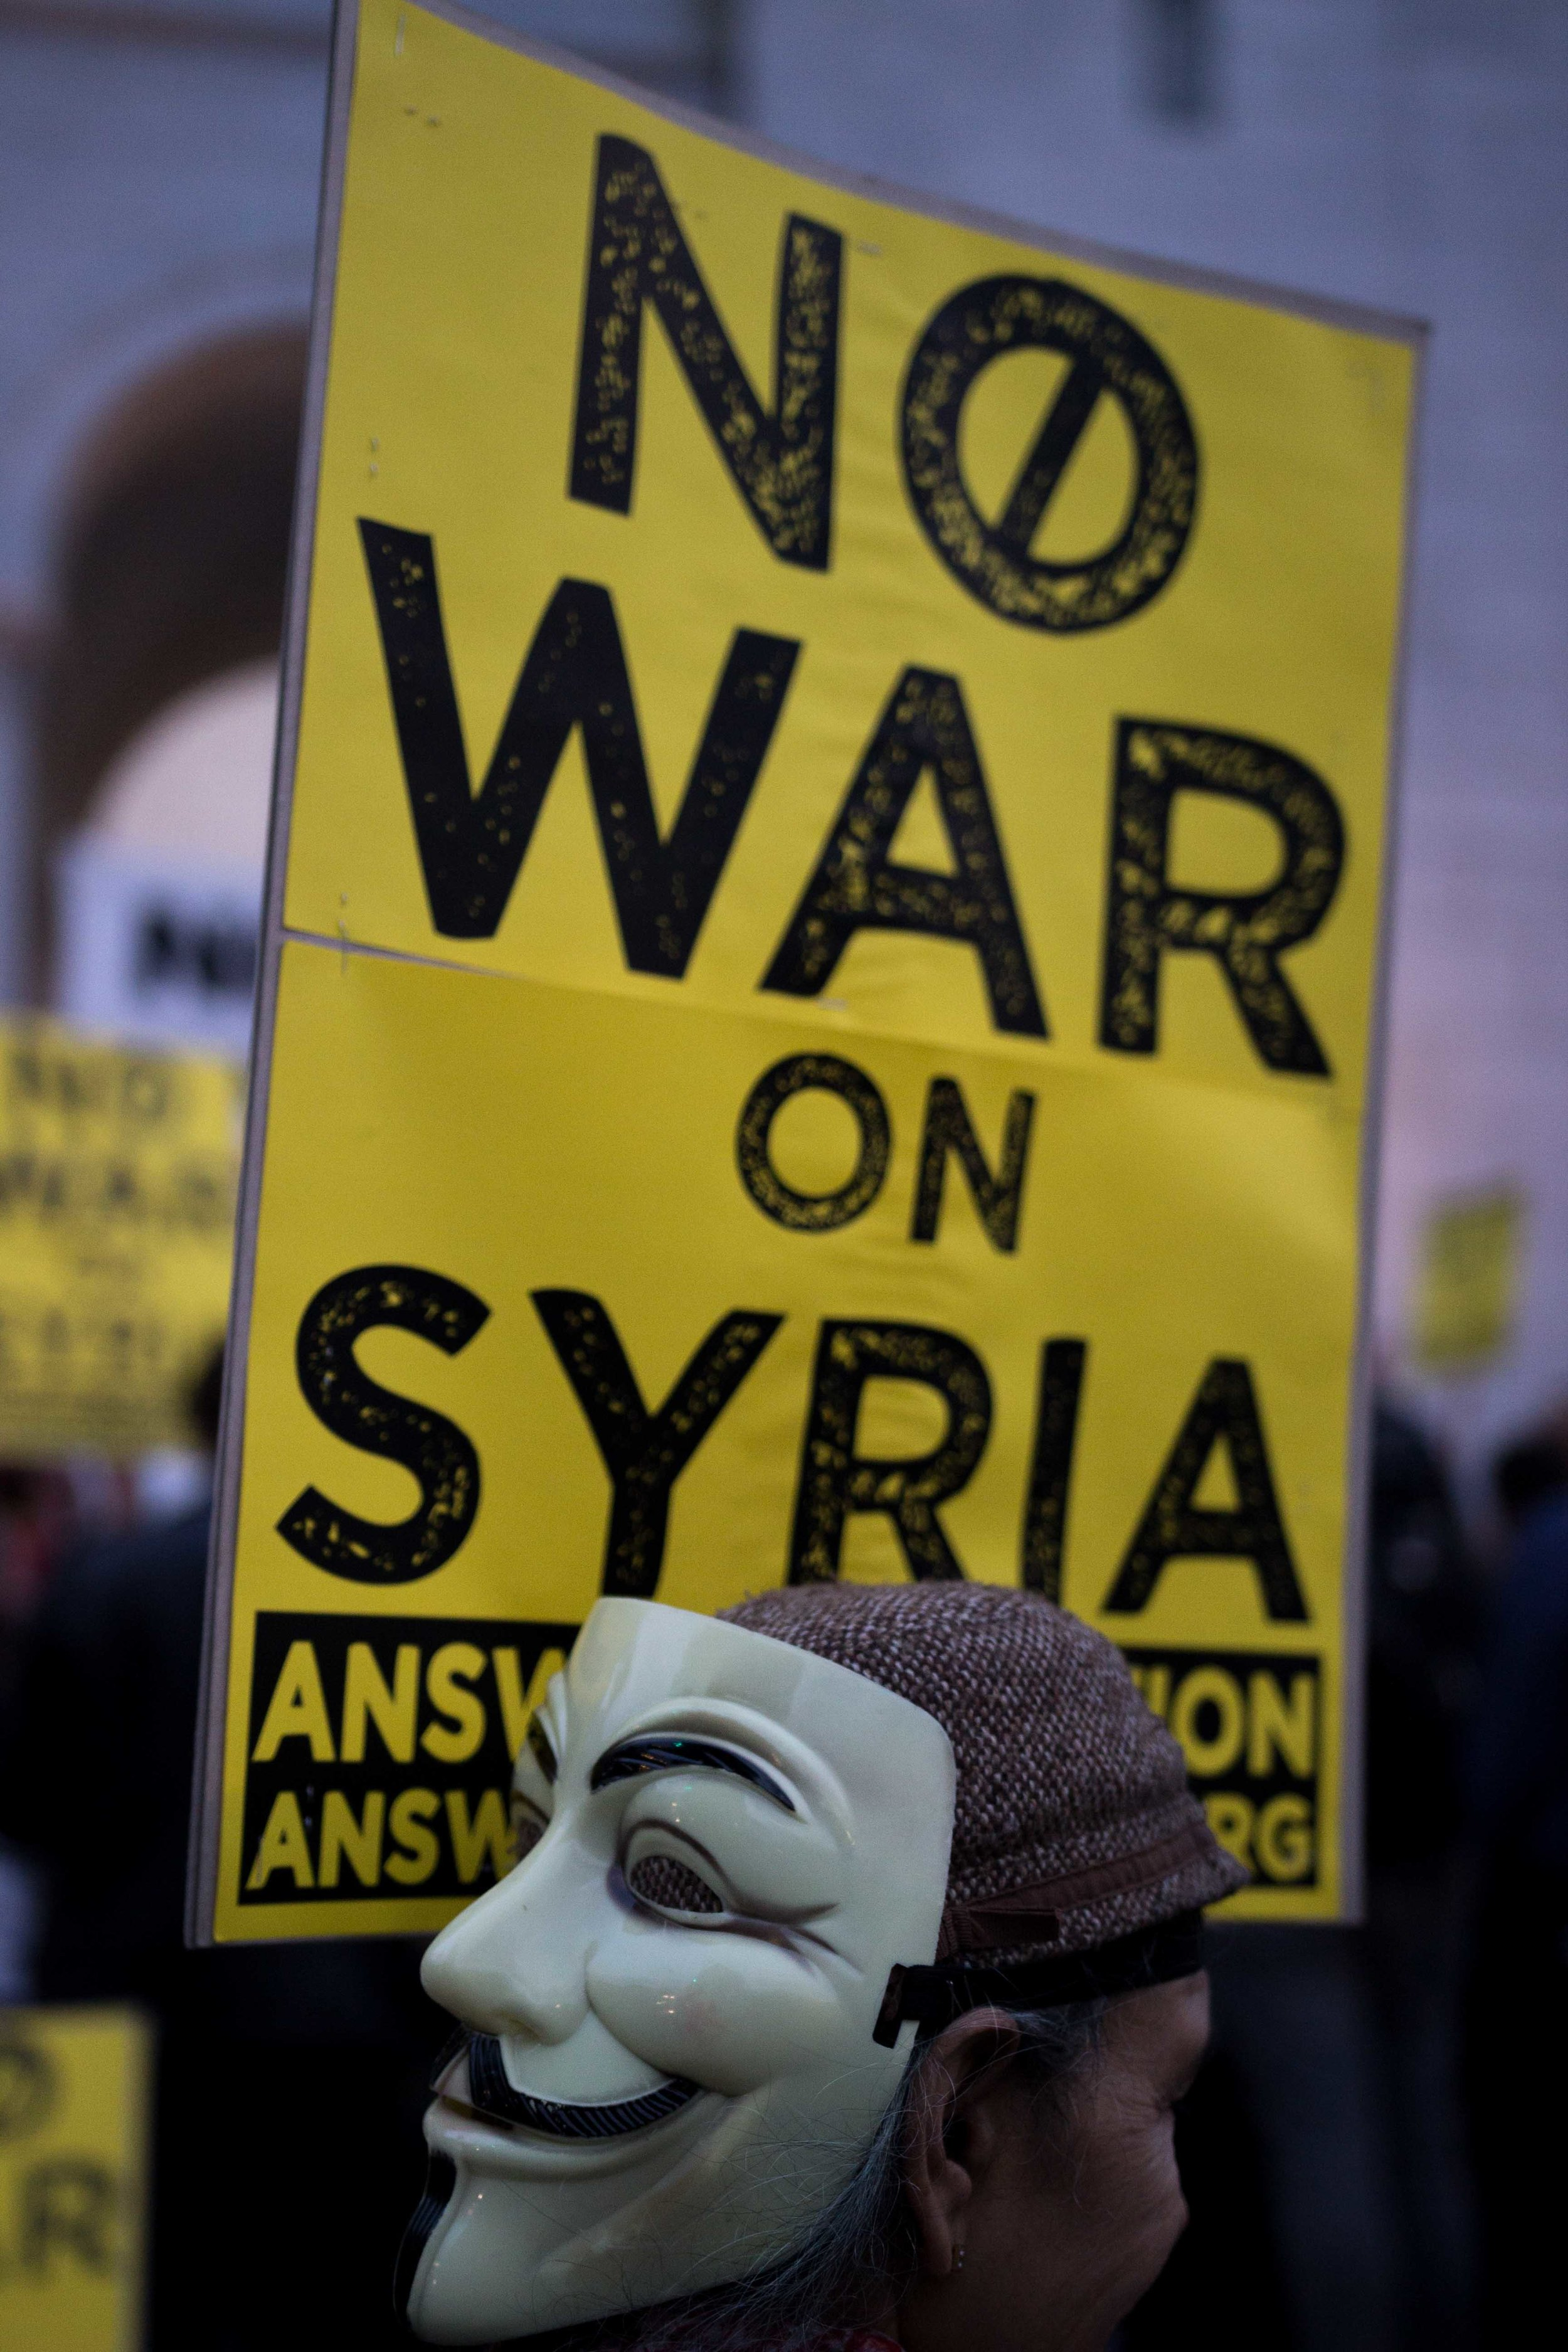 Protestor Bella De Soto shows her support for the people of Syria after the United States missile strike at Los Angeles City Hall in Downtown Los Angeles on April 7, 2017 (Photo By: Zane Meyer-Thornton)